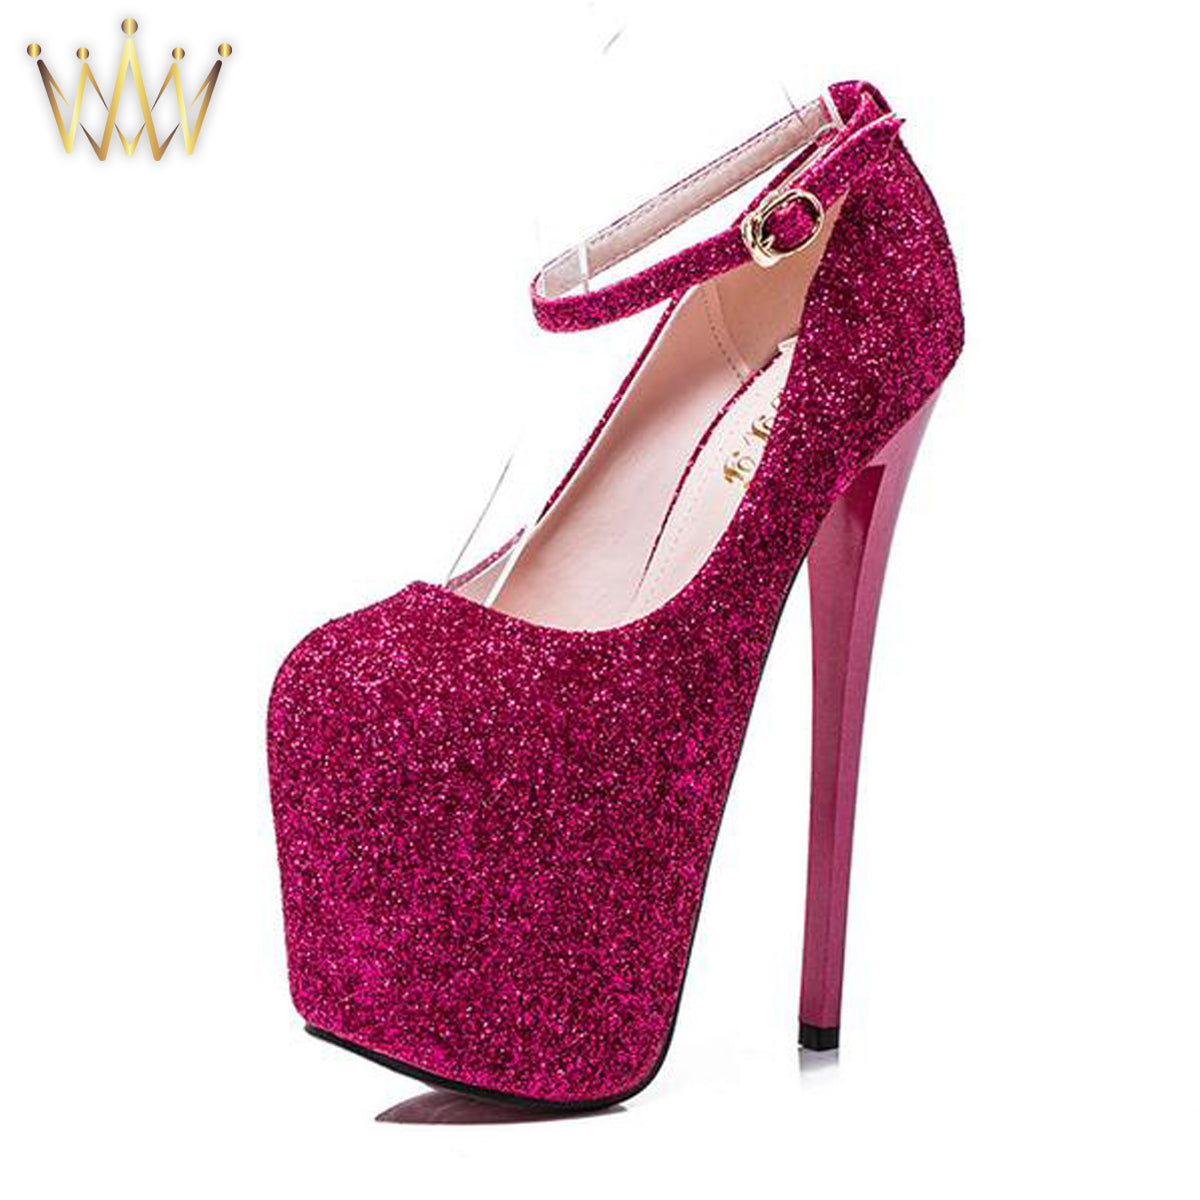 Platform Glitter Stiletto Pumps